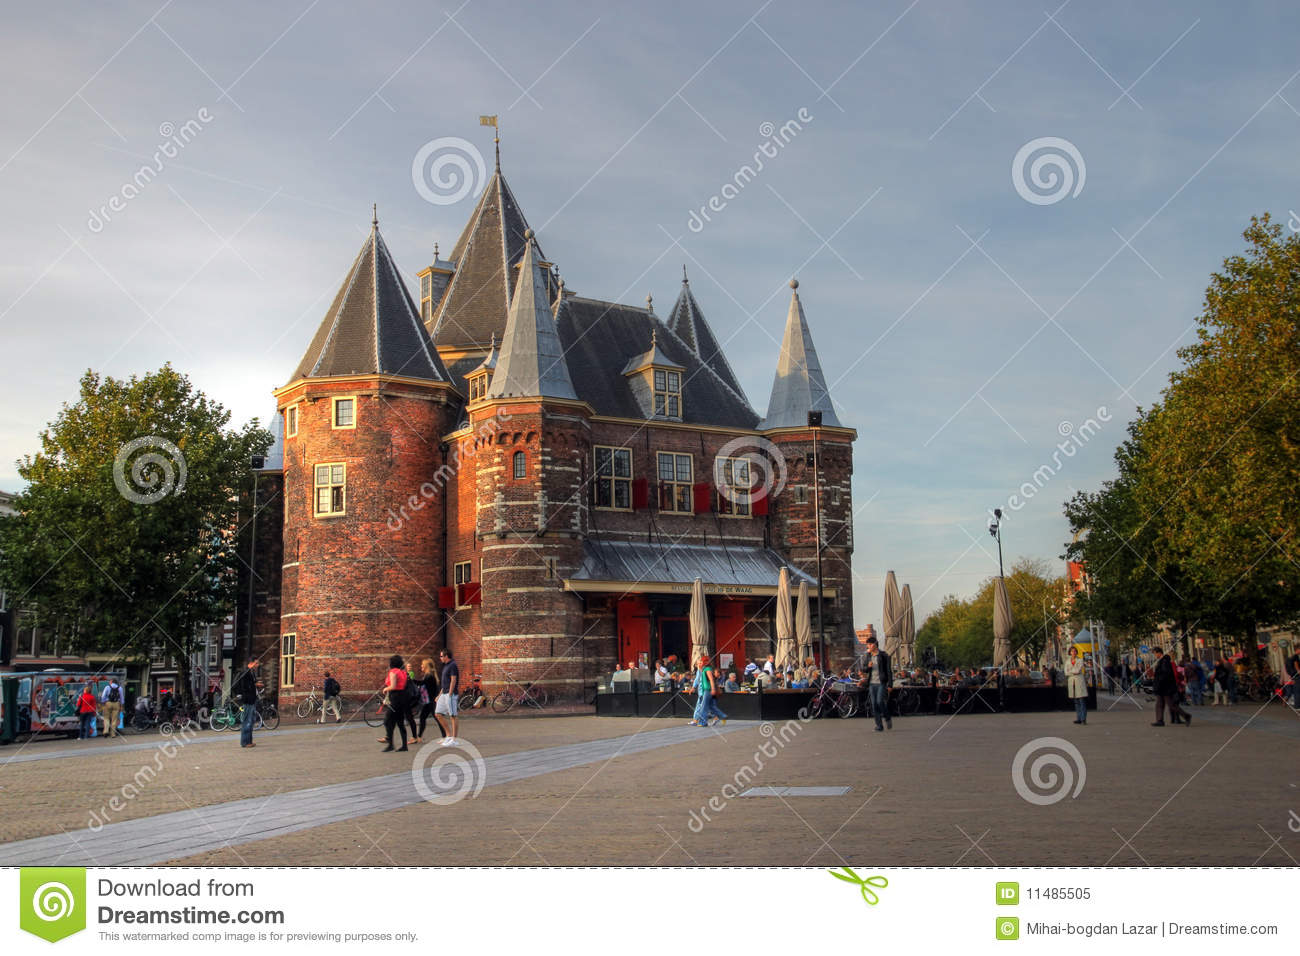 The Waag, Amsterdam, The Netherlands